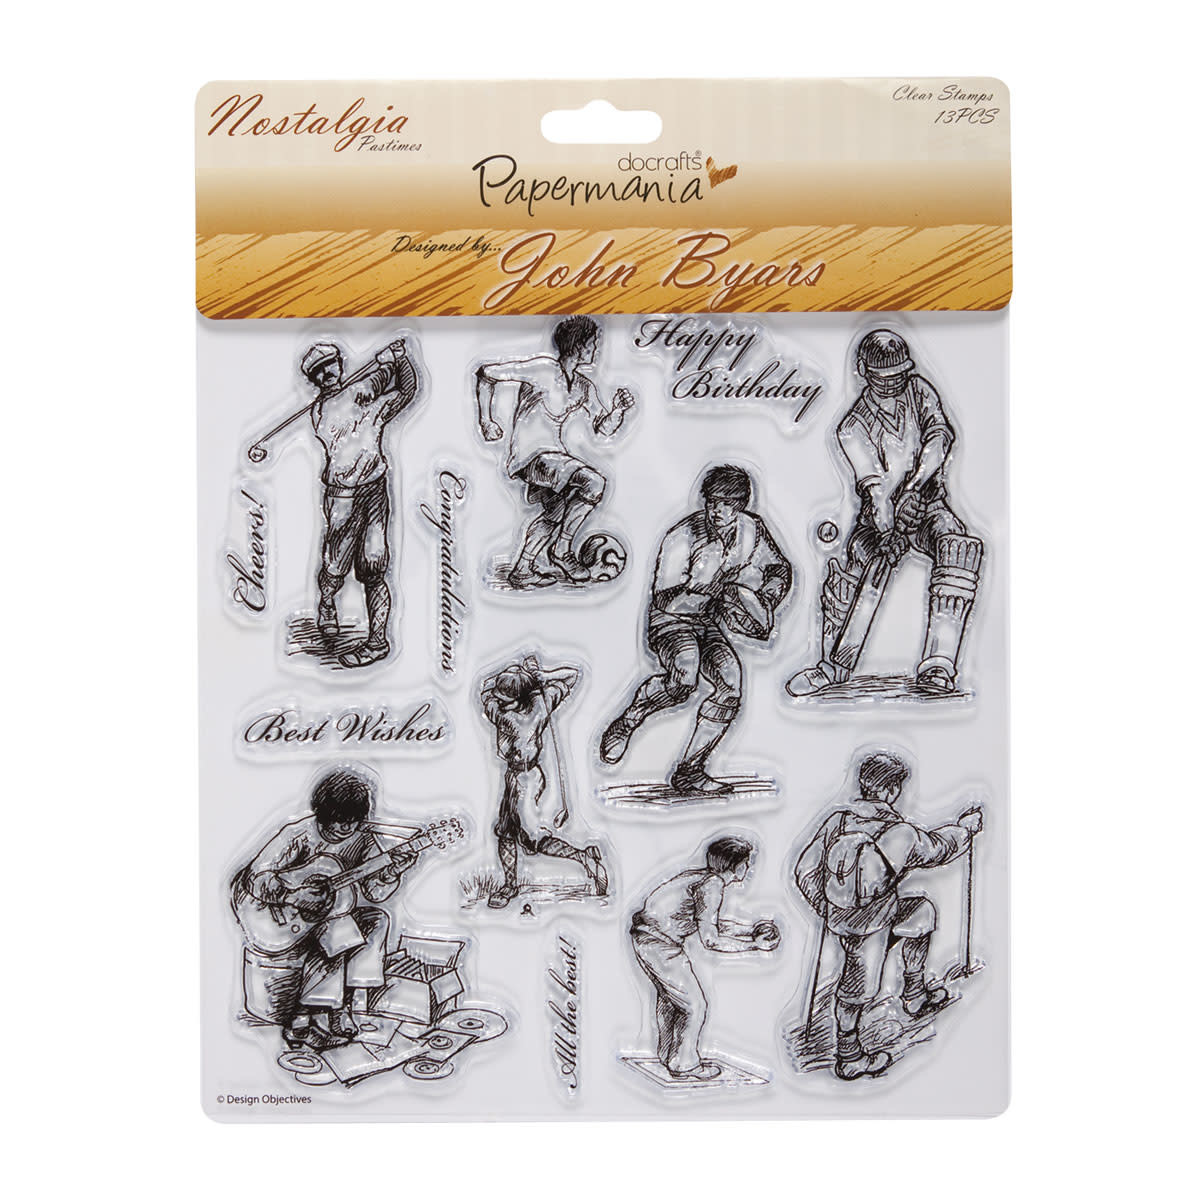 Papermania 8x8 clear stamps pastimes